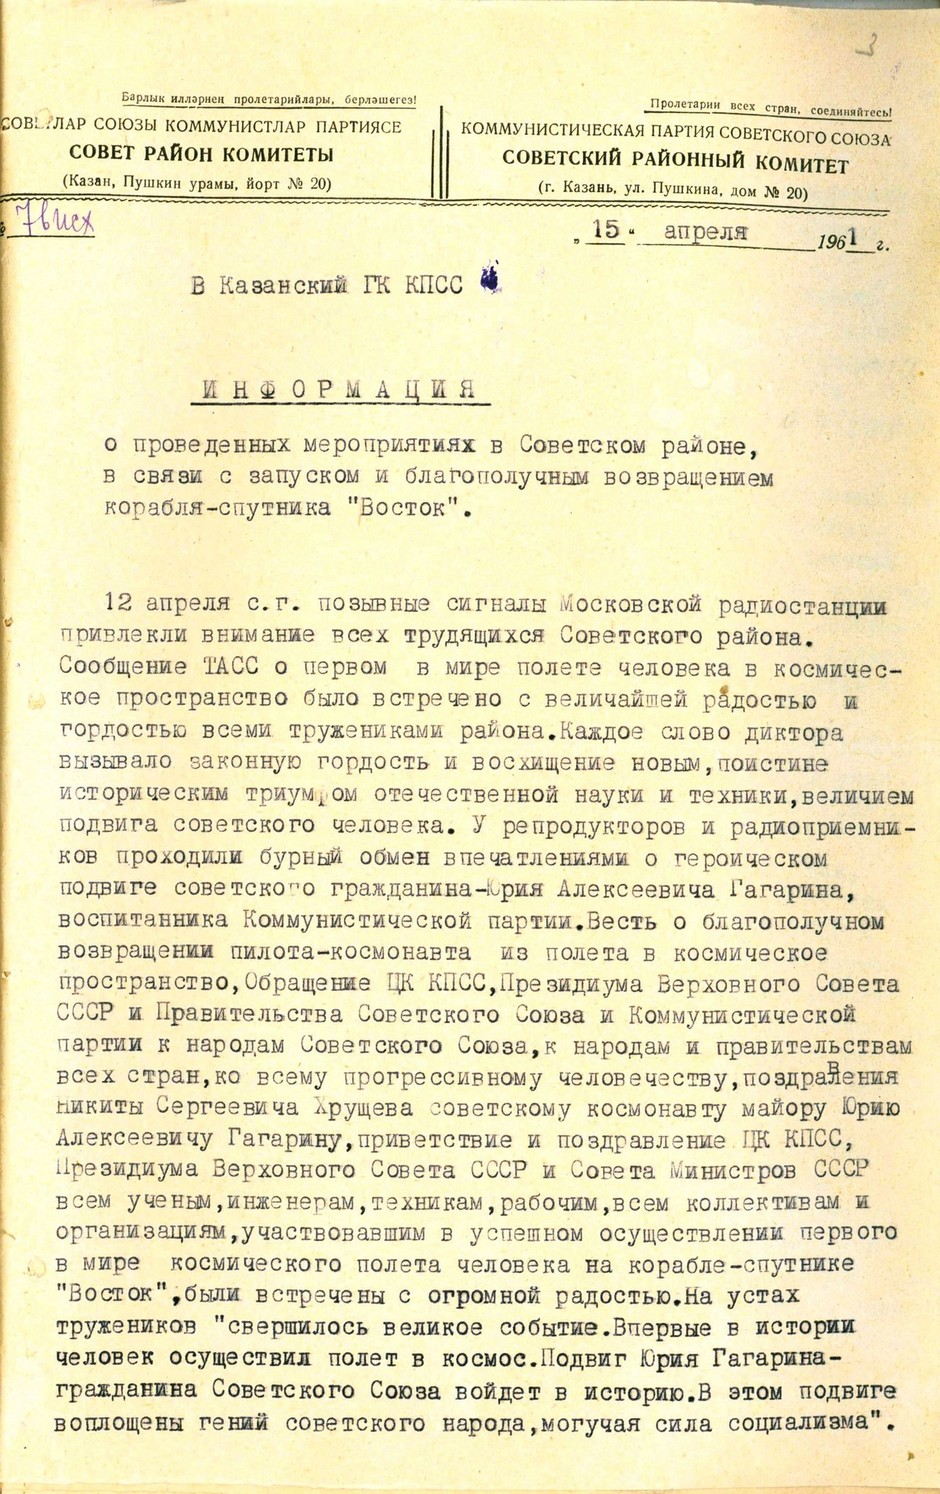 The information of the Soviet District Committee of CPSU to the Kazan City Committee of CPSU about the activities undertaken in the Sovetsky district of Kazan in connection with the launch and safe return of Vostok spacecraft. April 15, 1961